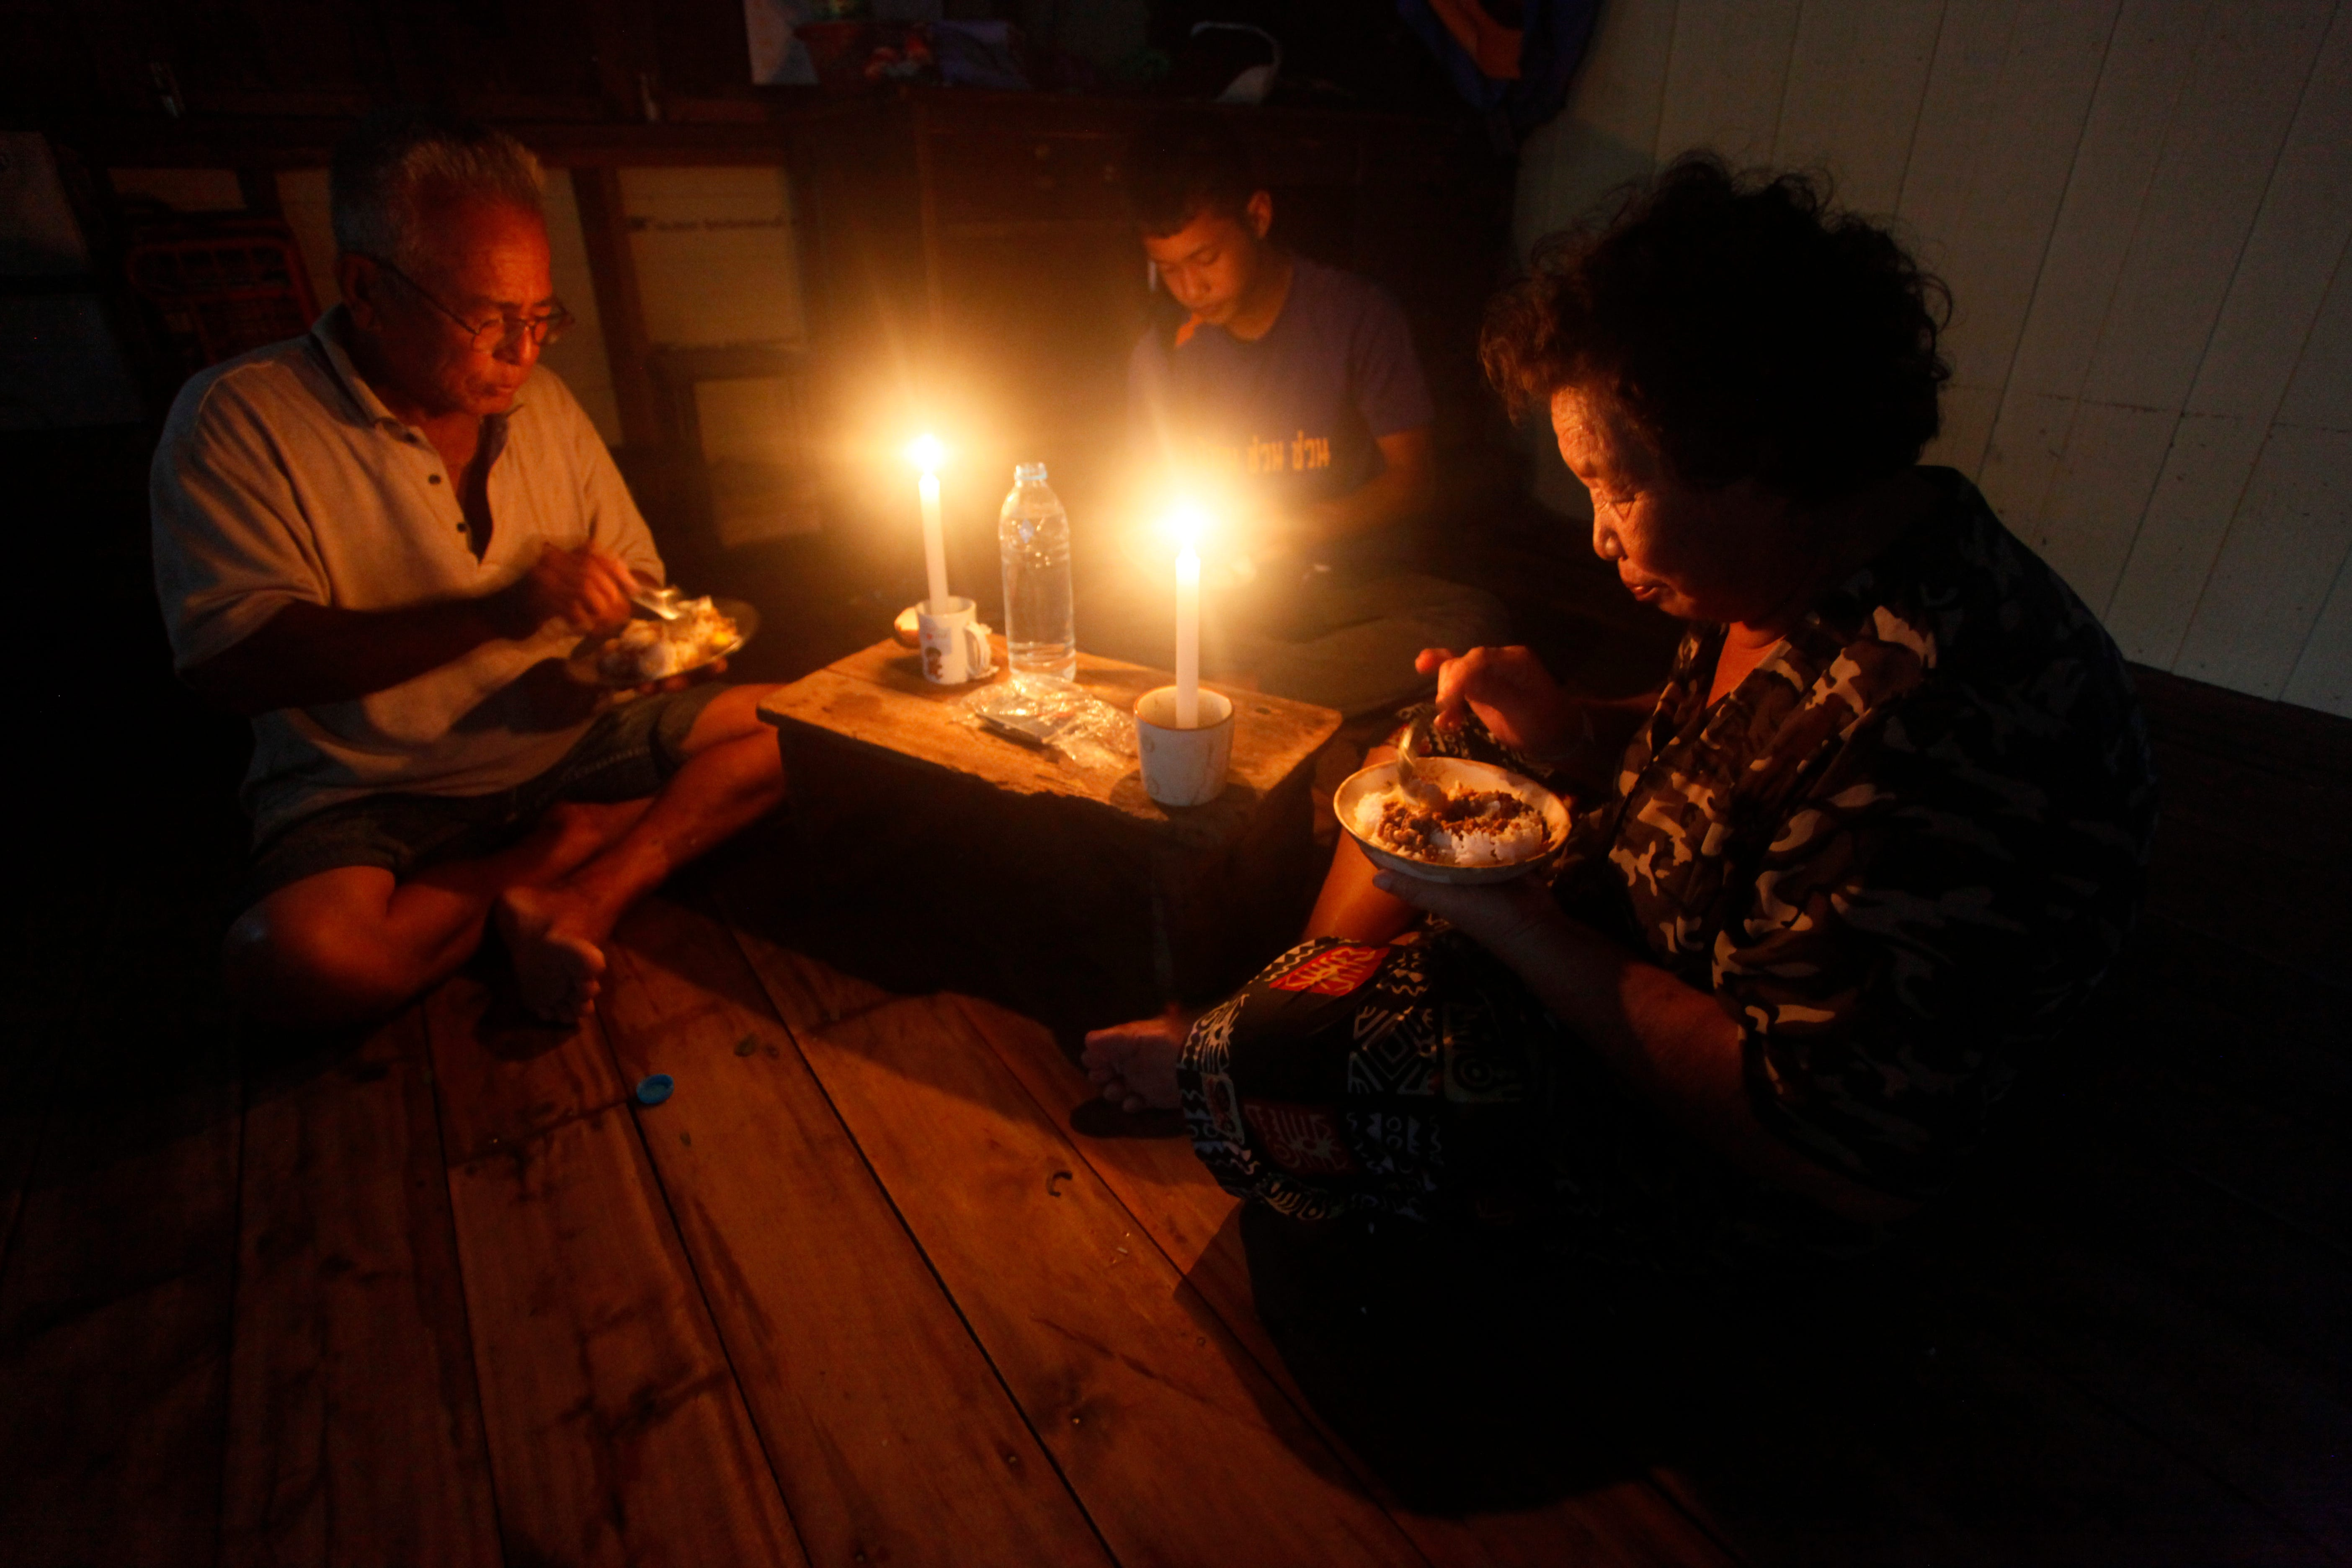 A Thai family eat dinner without electricity in the aftermath of Tropical Storm Pabuk Saturday, Jan. 5, 2019, in Pak Phanang, Nakhon Si Thammarat, province southern Thailand. Ferry services and airports have reopened in southern Thailand after a storm moved west into the Andaman Sea.